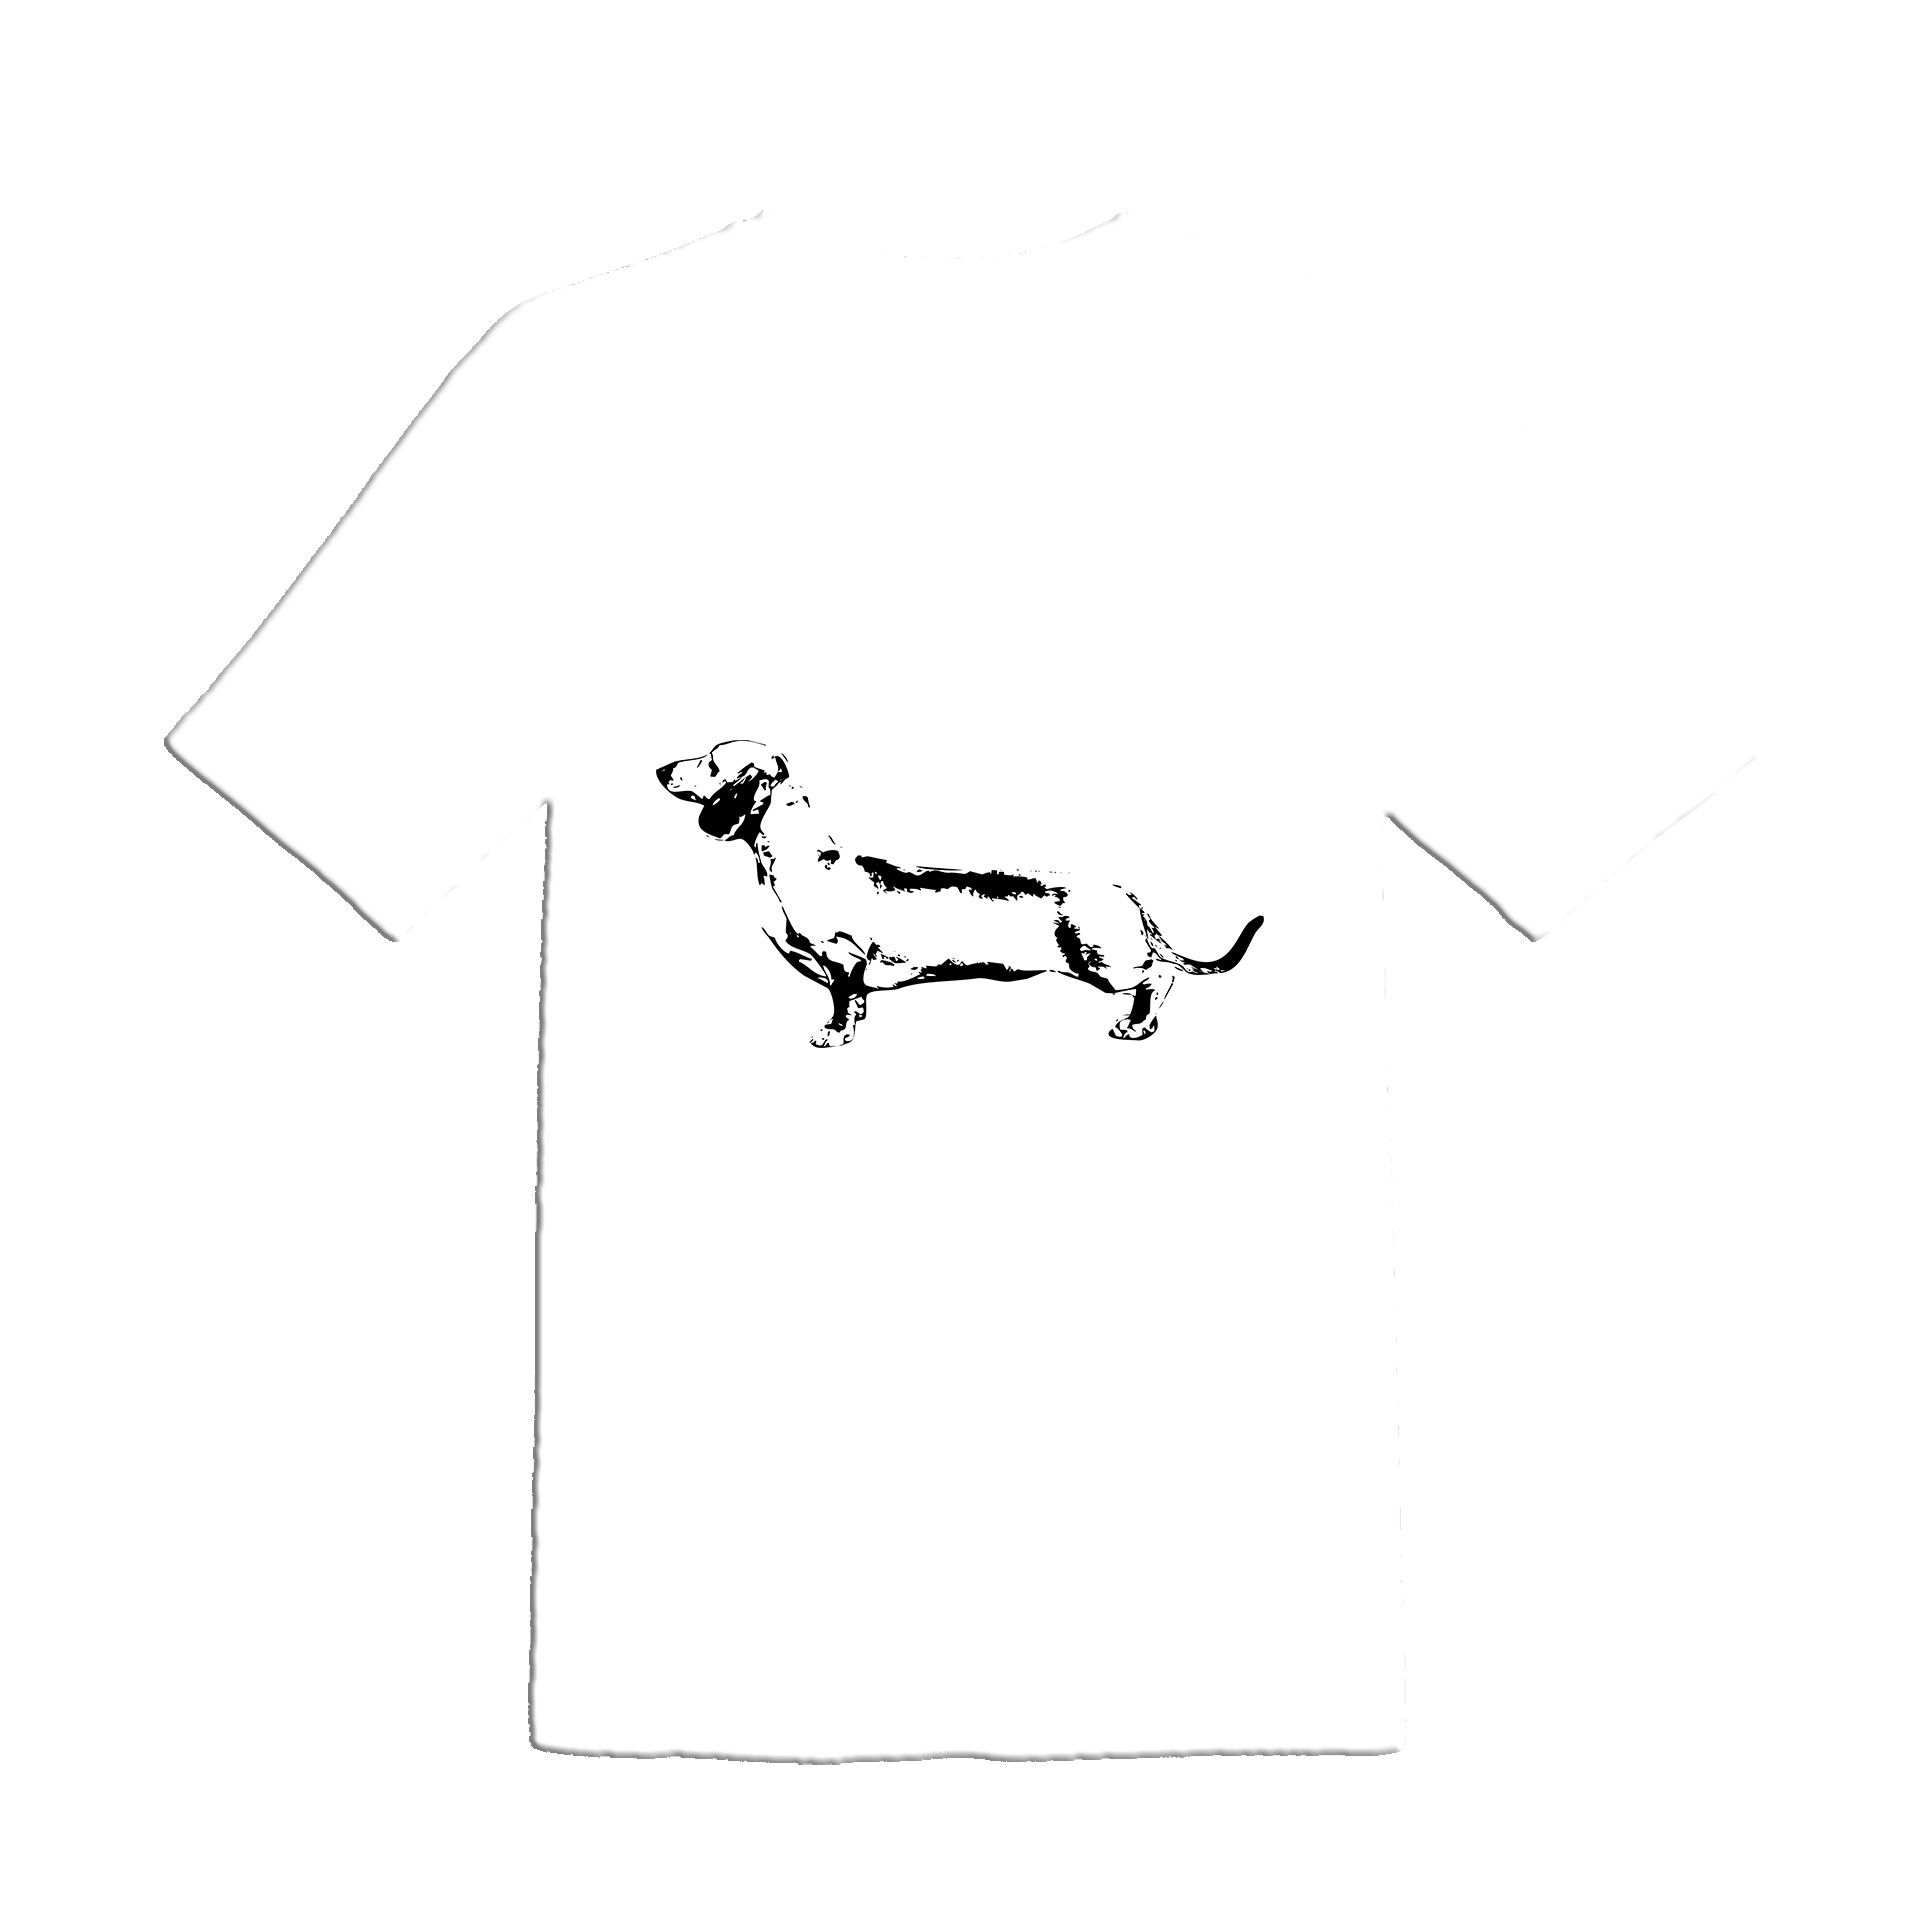 medium resolution of dachshund outline stencil weiner dog vector art images for cut files or prints